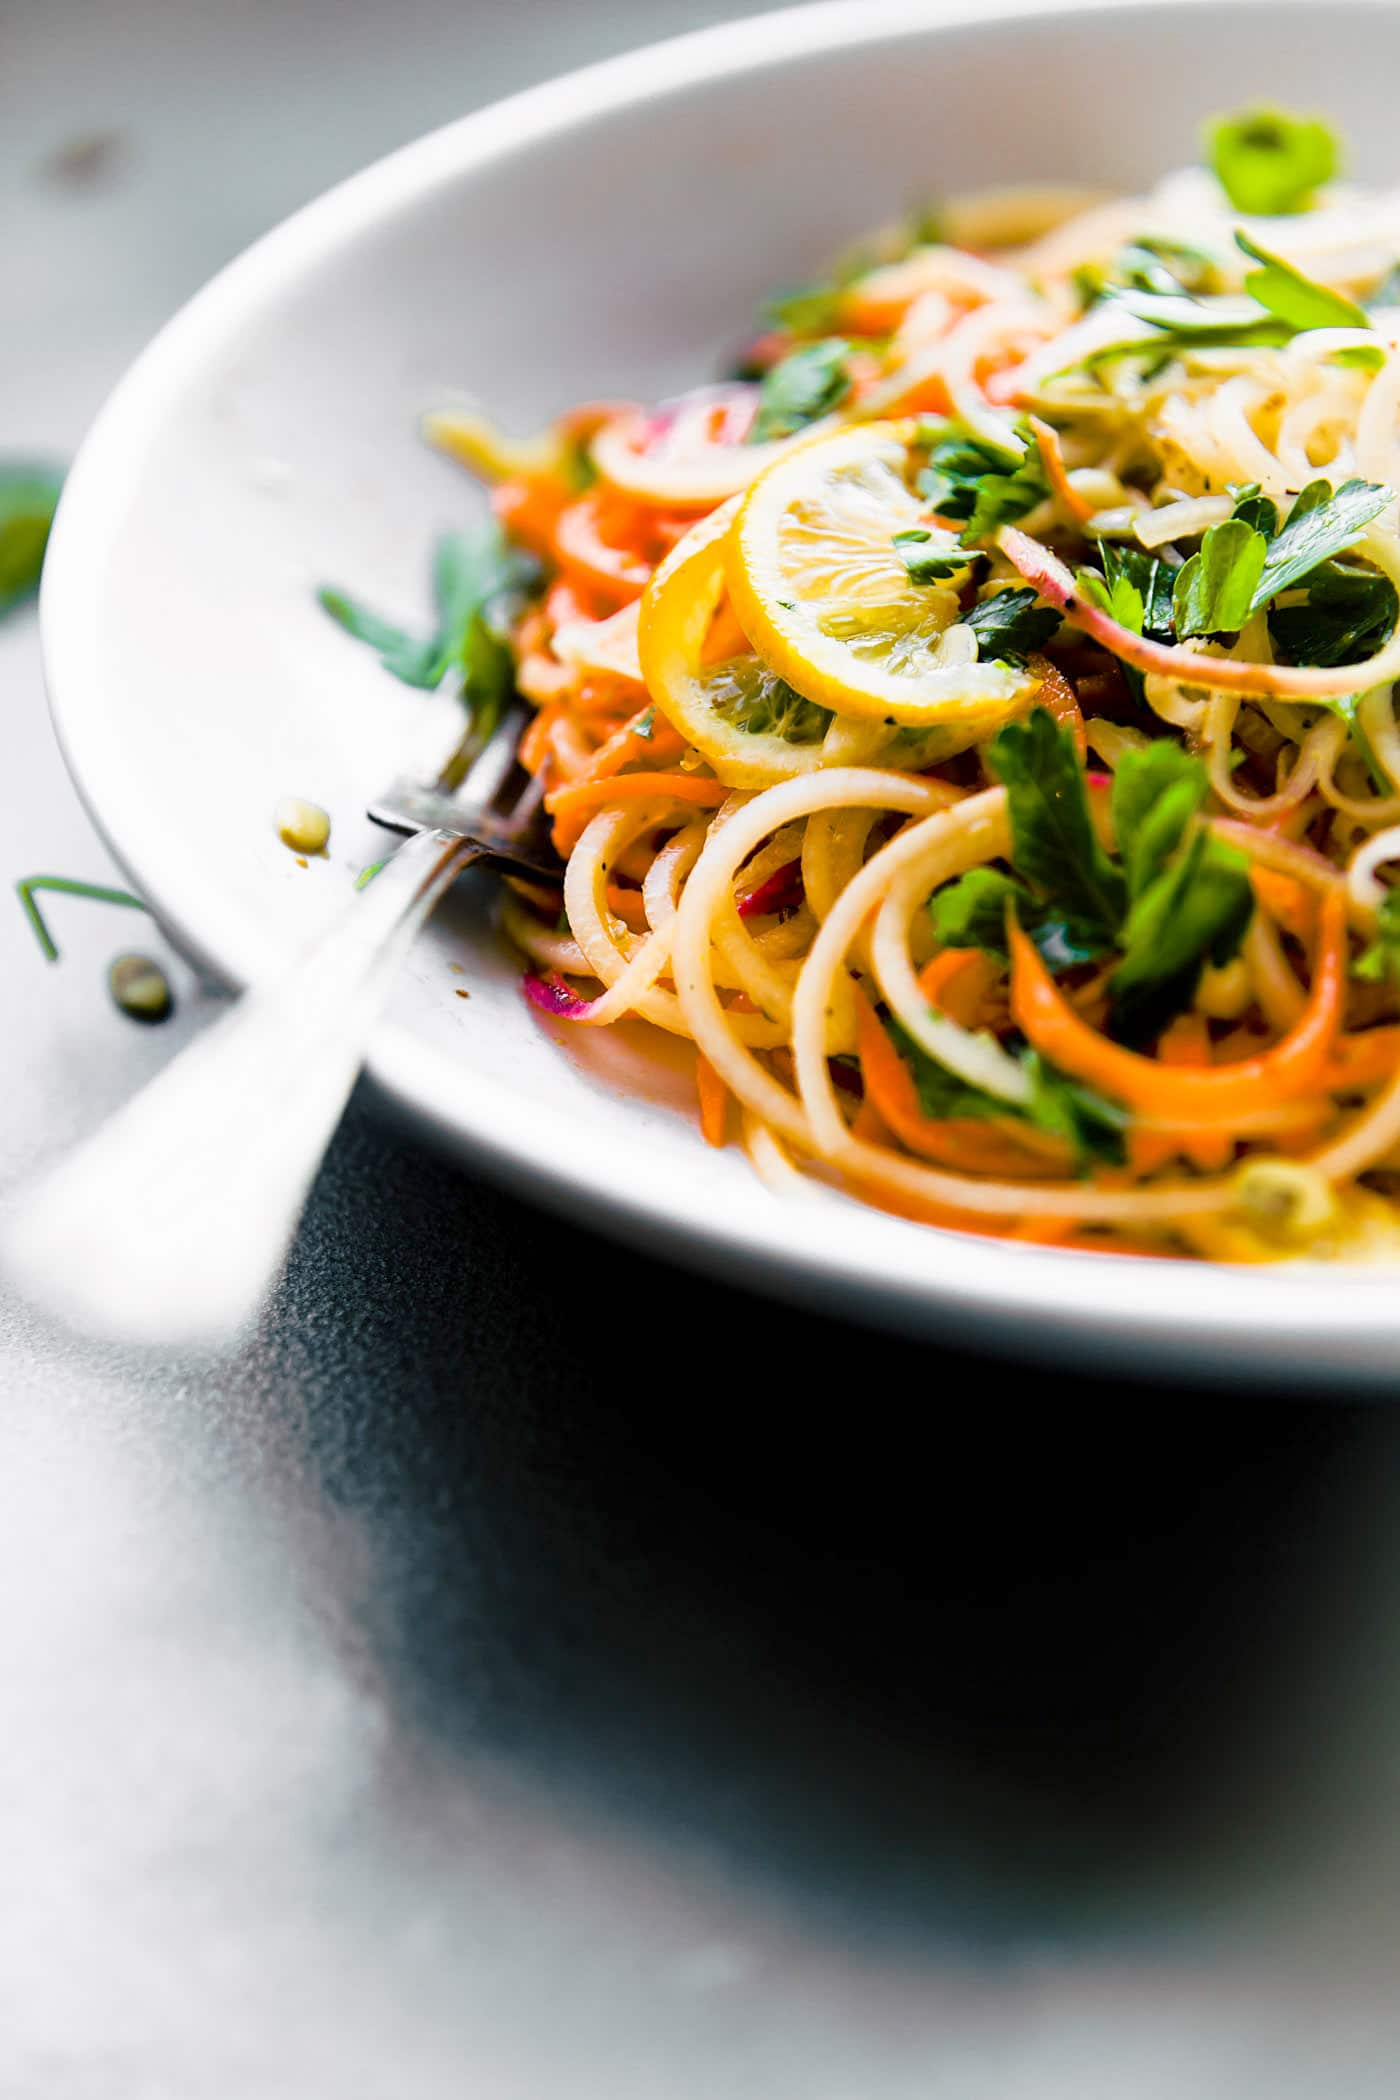 Carrot Celeriac Spiralized Salad in bowl with fork